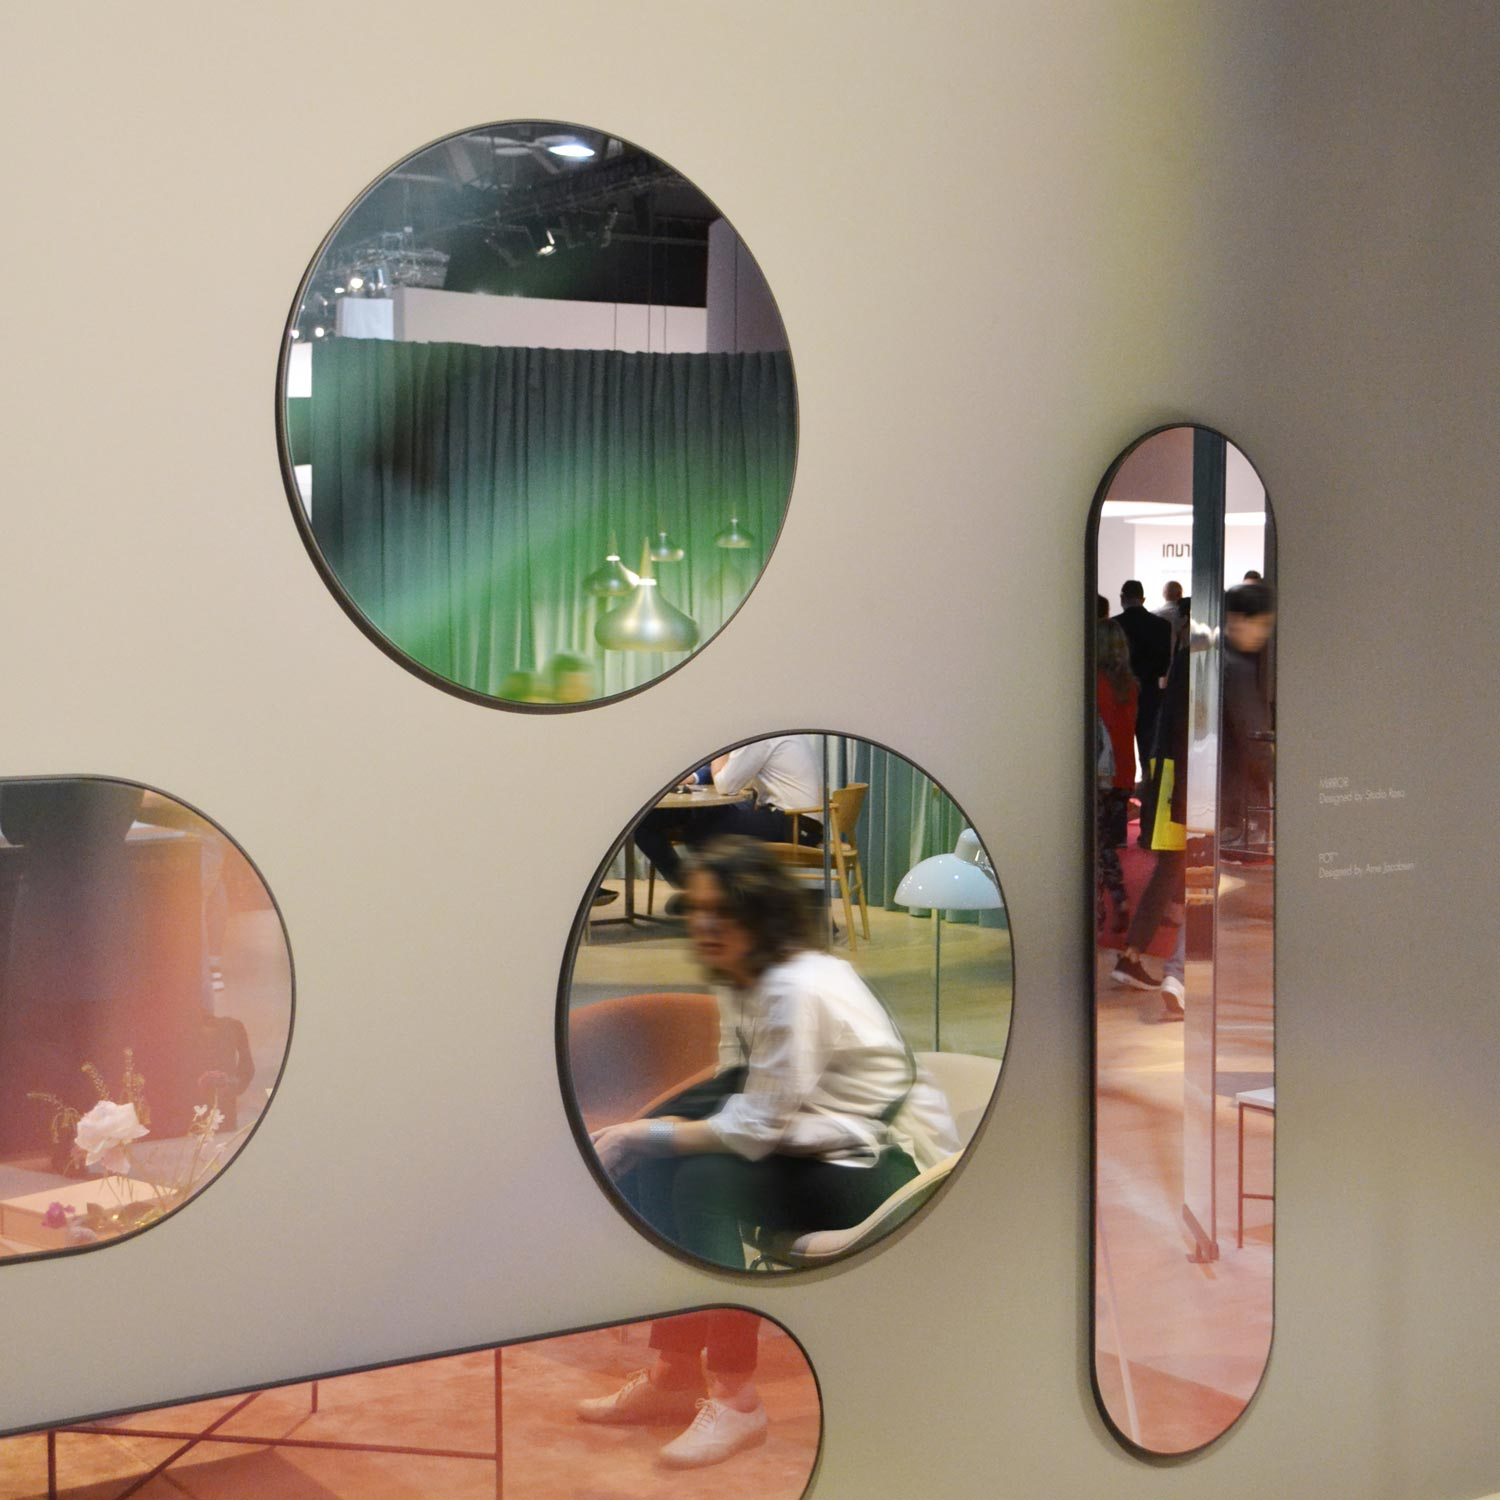 Casum Trends Salone del Mobile 2018. Mirrors at Fritz Hansen booth